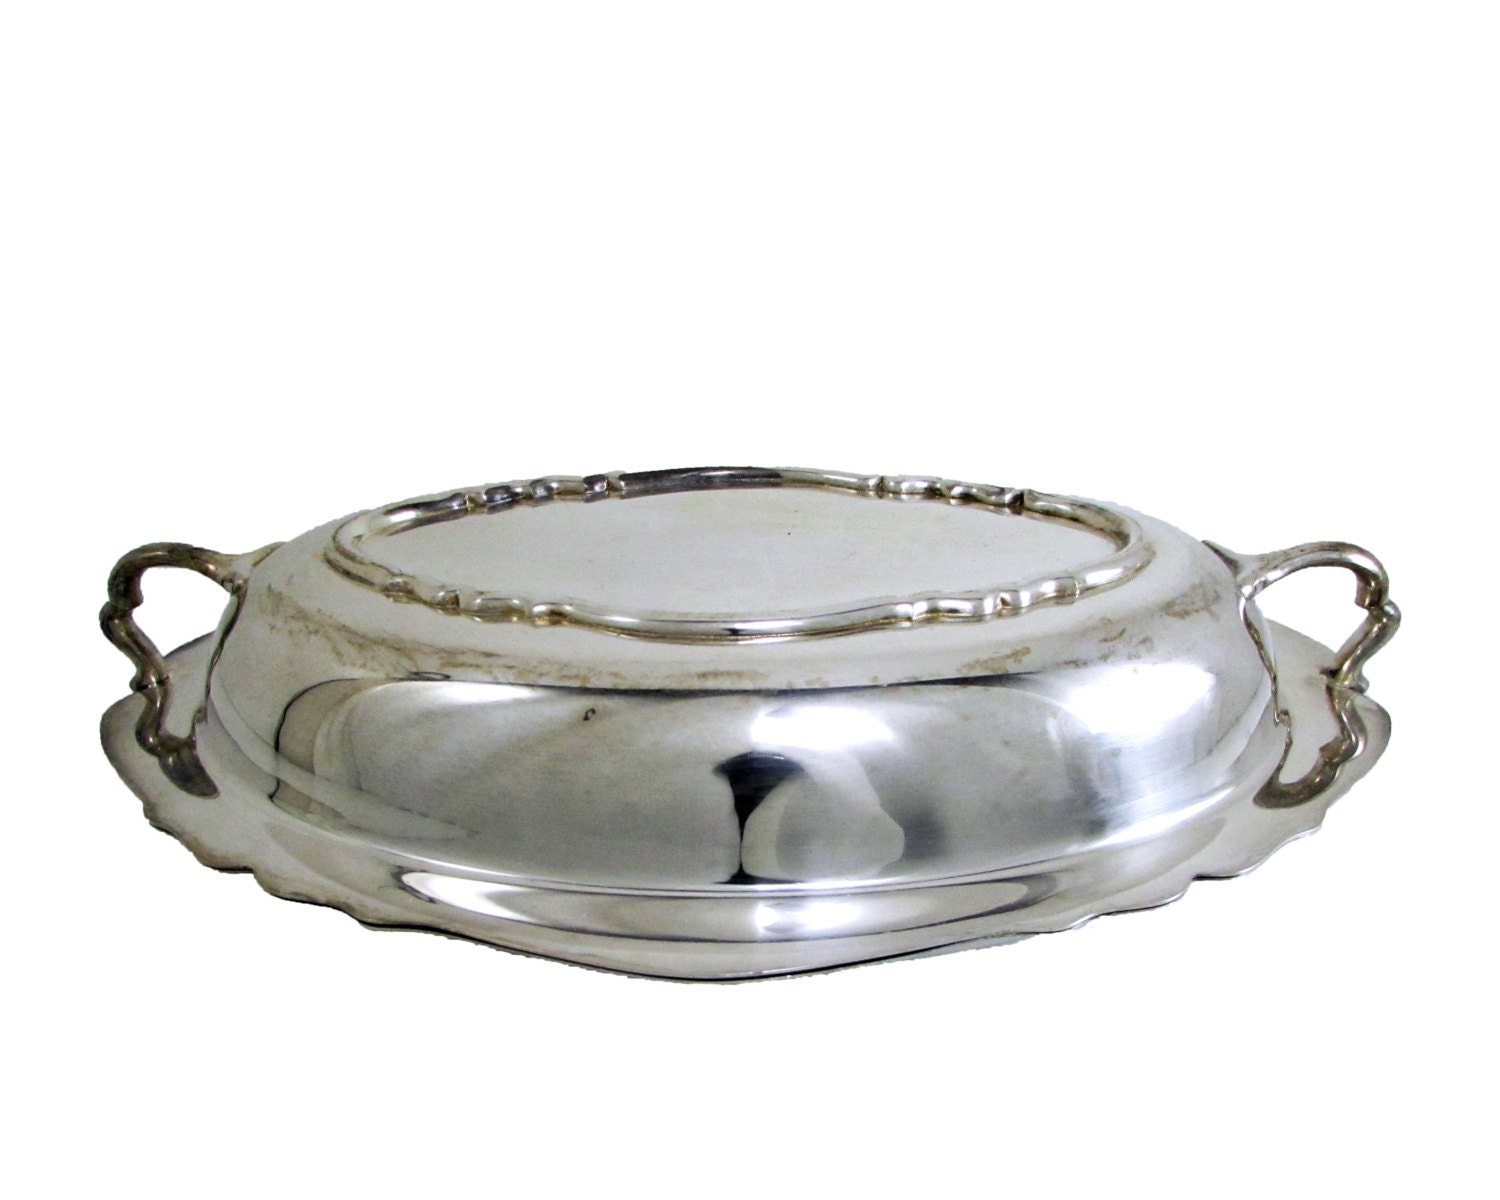 SheffieldSilver Co 1 QueenAnne 3Qt Silverplated Chafing Dish 1 Vegtable Dish